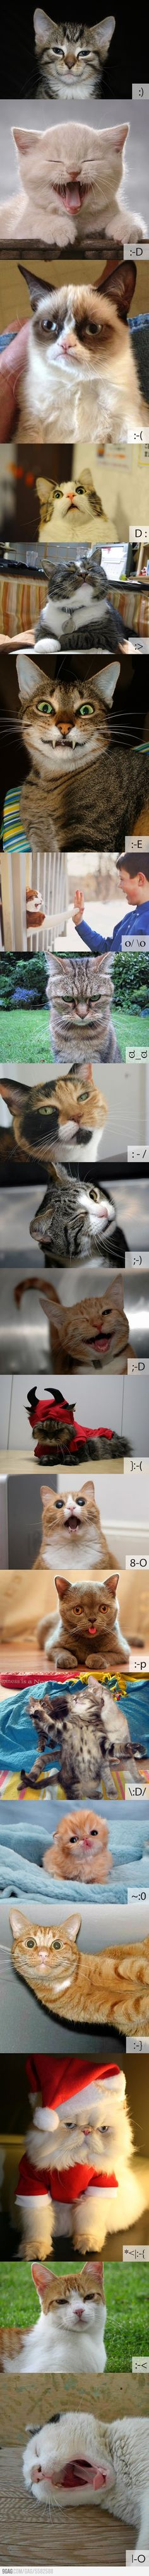 Cats As Emoticons